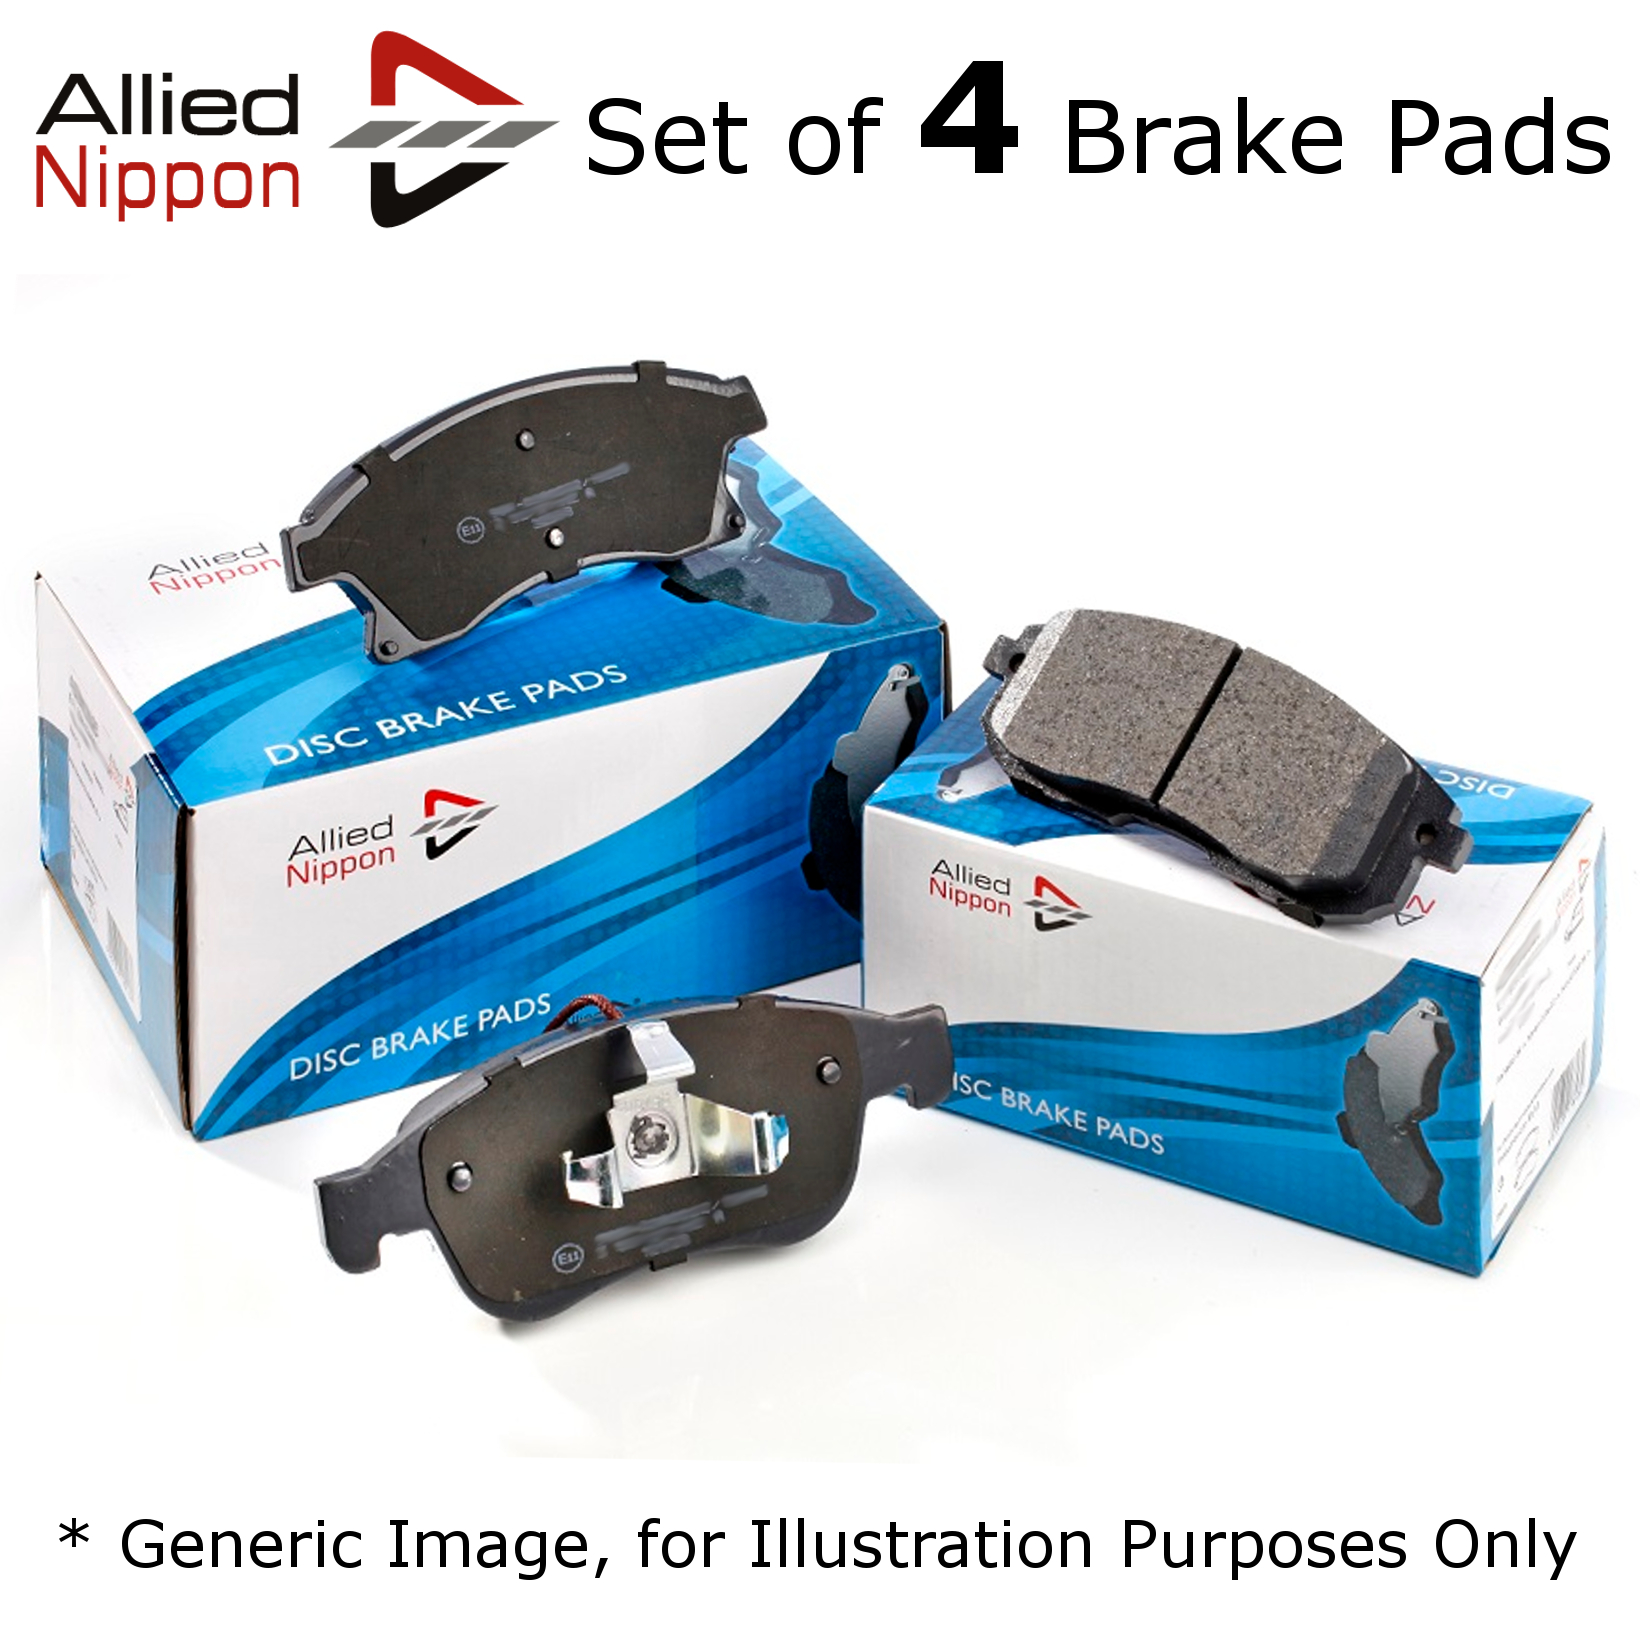 Mercedes S-Class W220 S 320 Genuine Allied Nippon Front Brake Pads Set